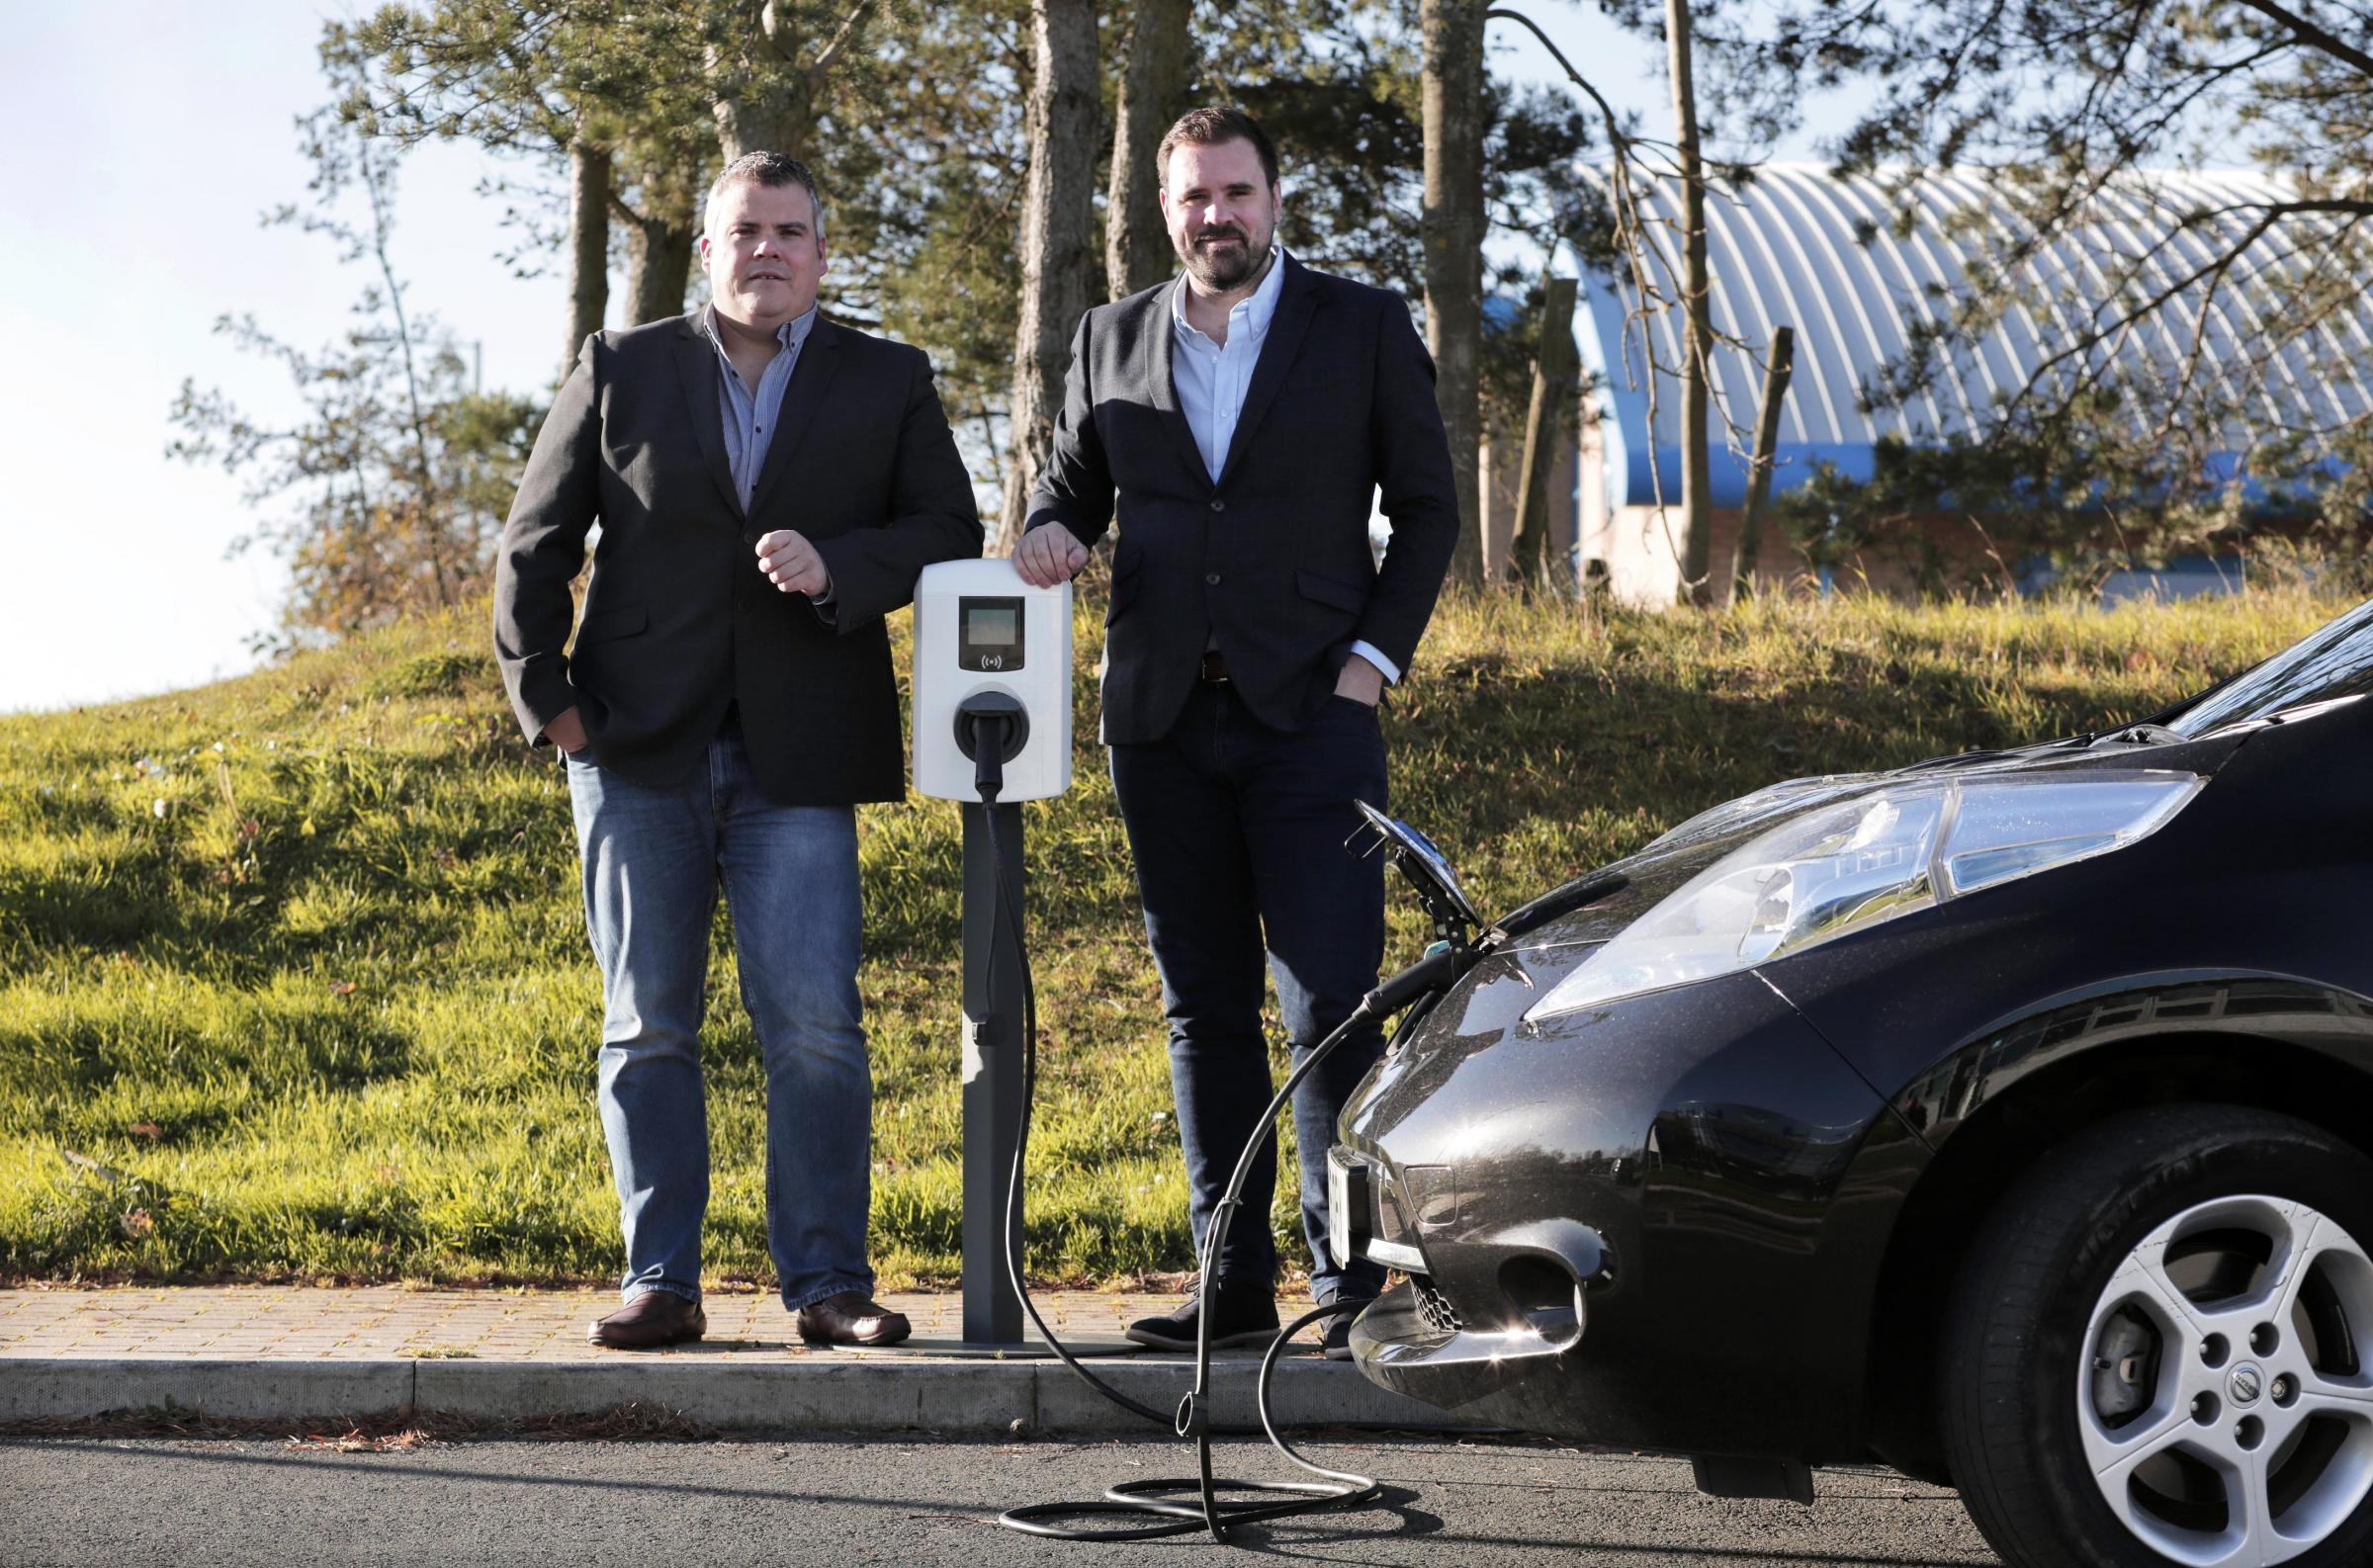 PLANS: Elmtronics' technical director Anthony Piggott, left, with commercial director Dan Martin and one of the recharging units at the company's Consett base